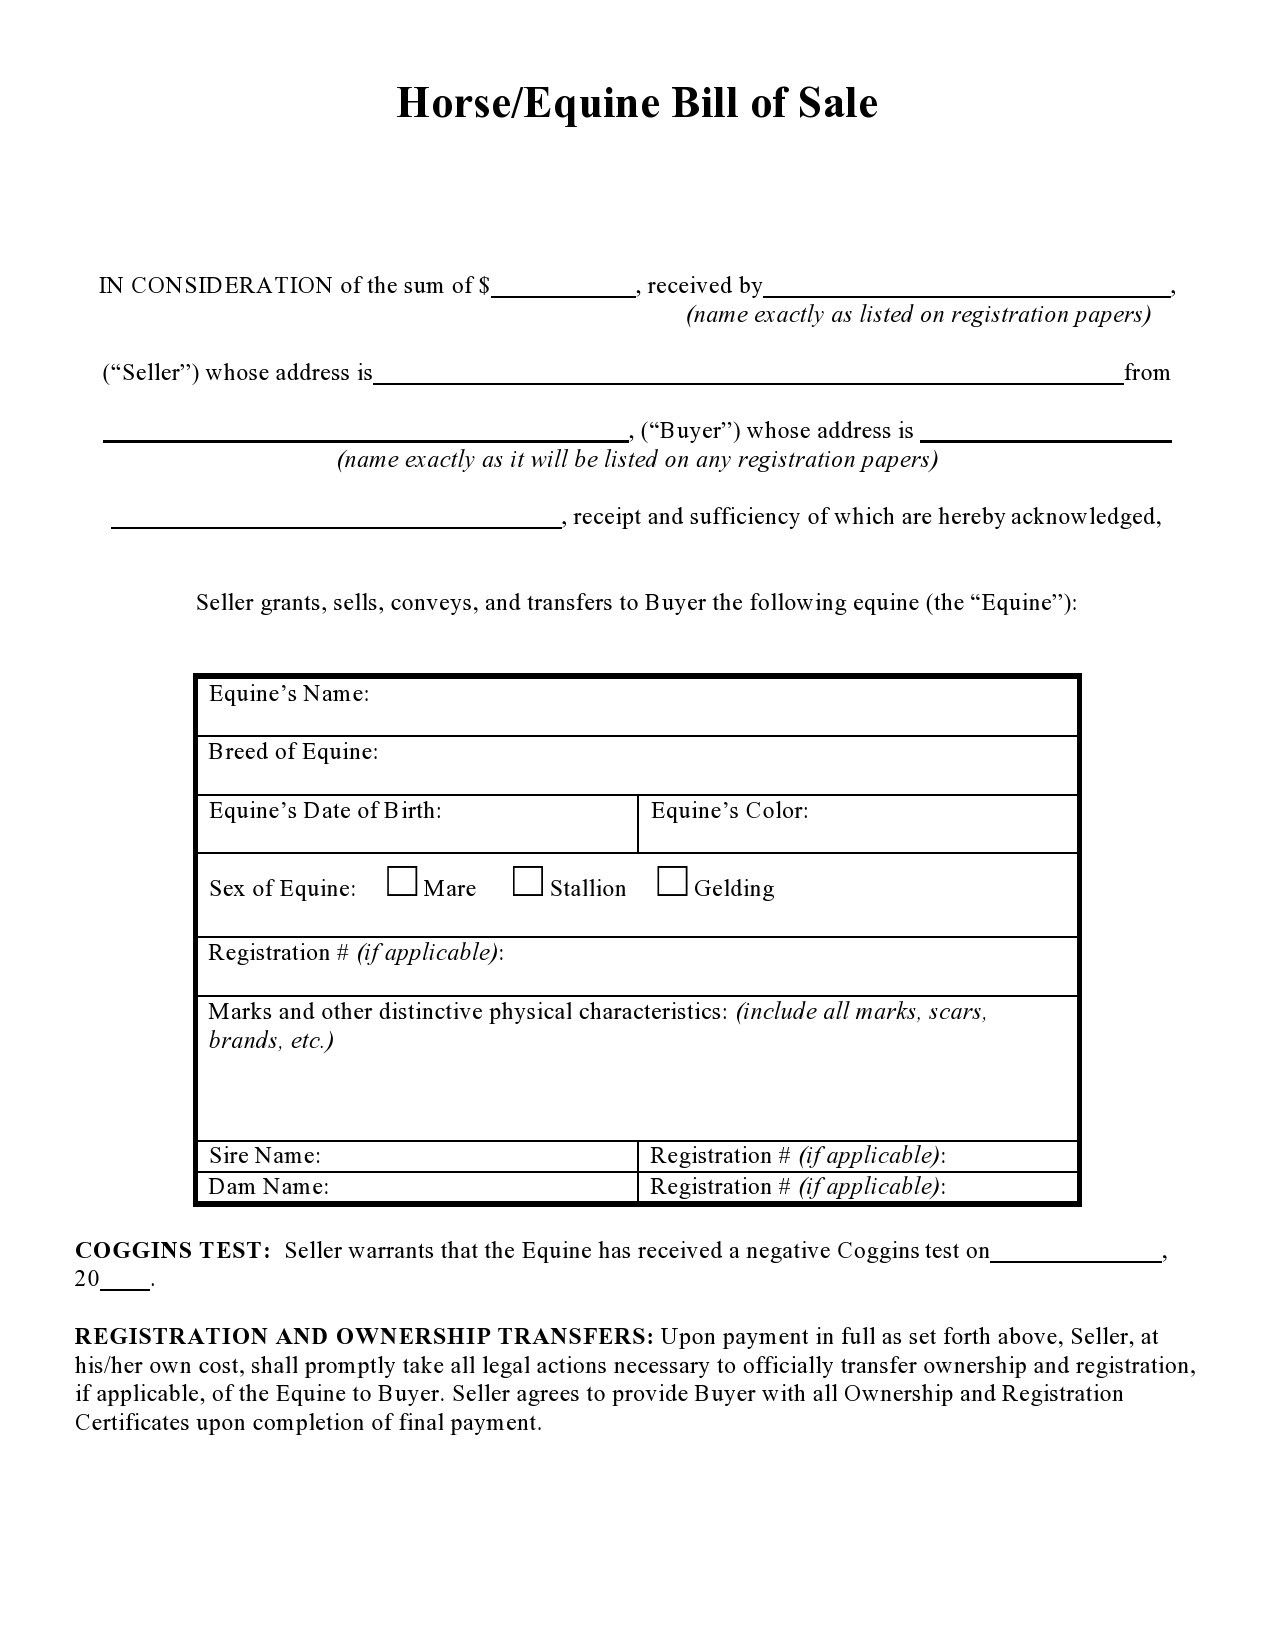 Free horse bill of sale 06